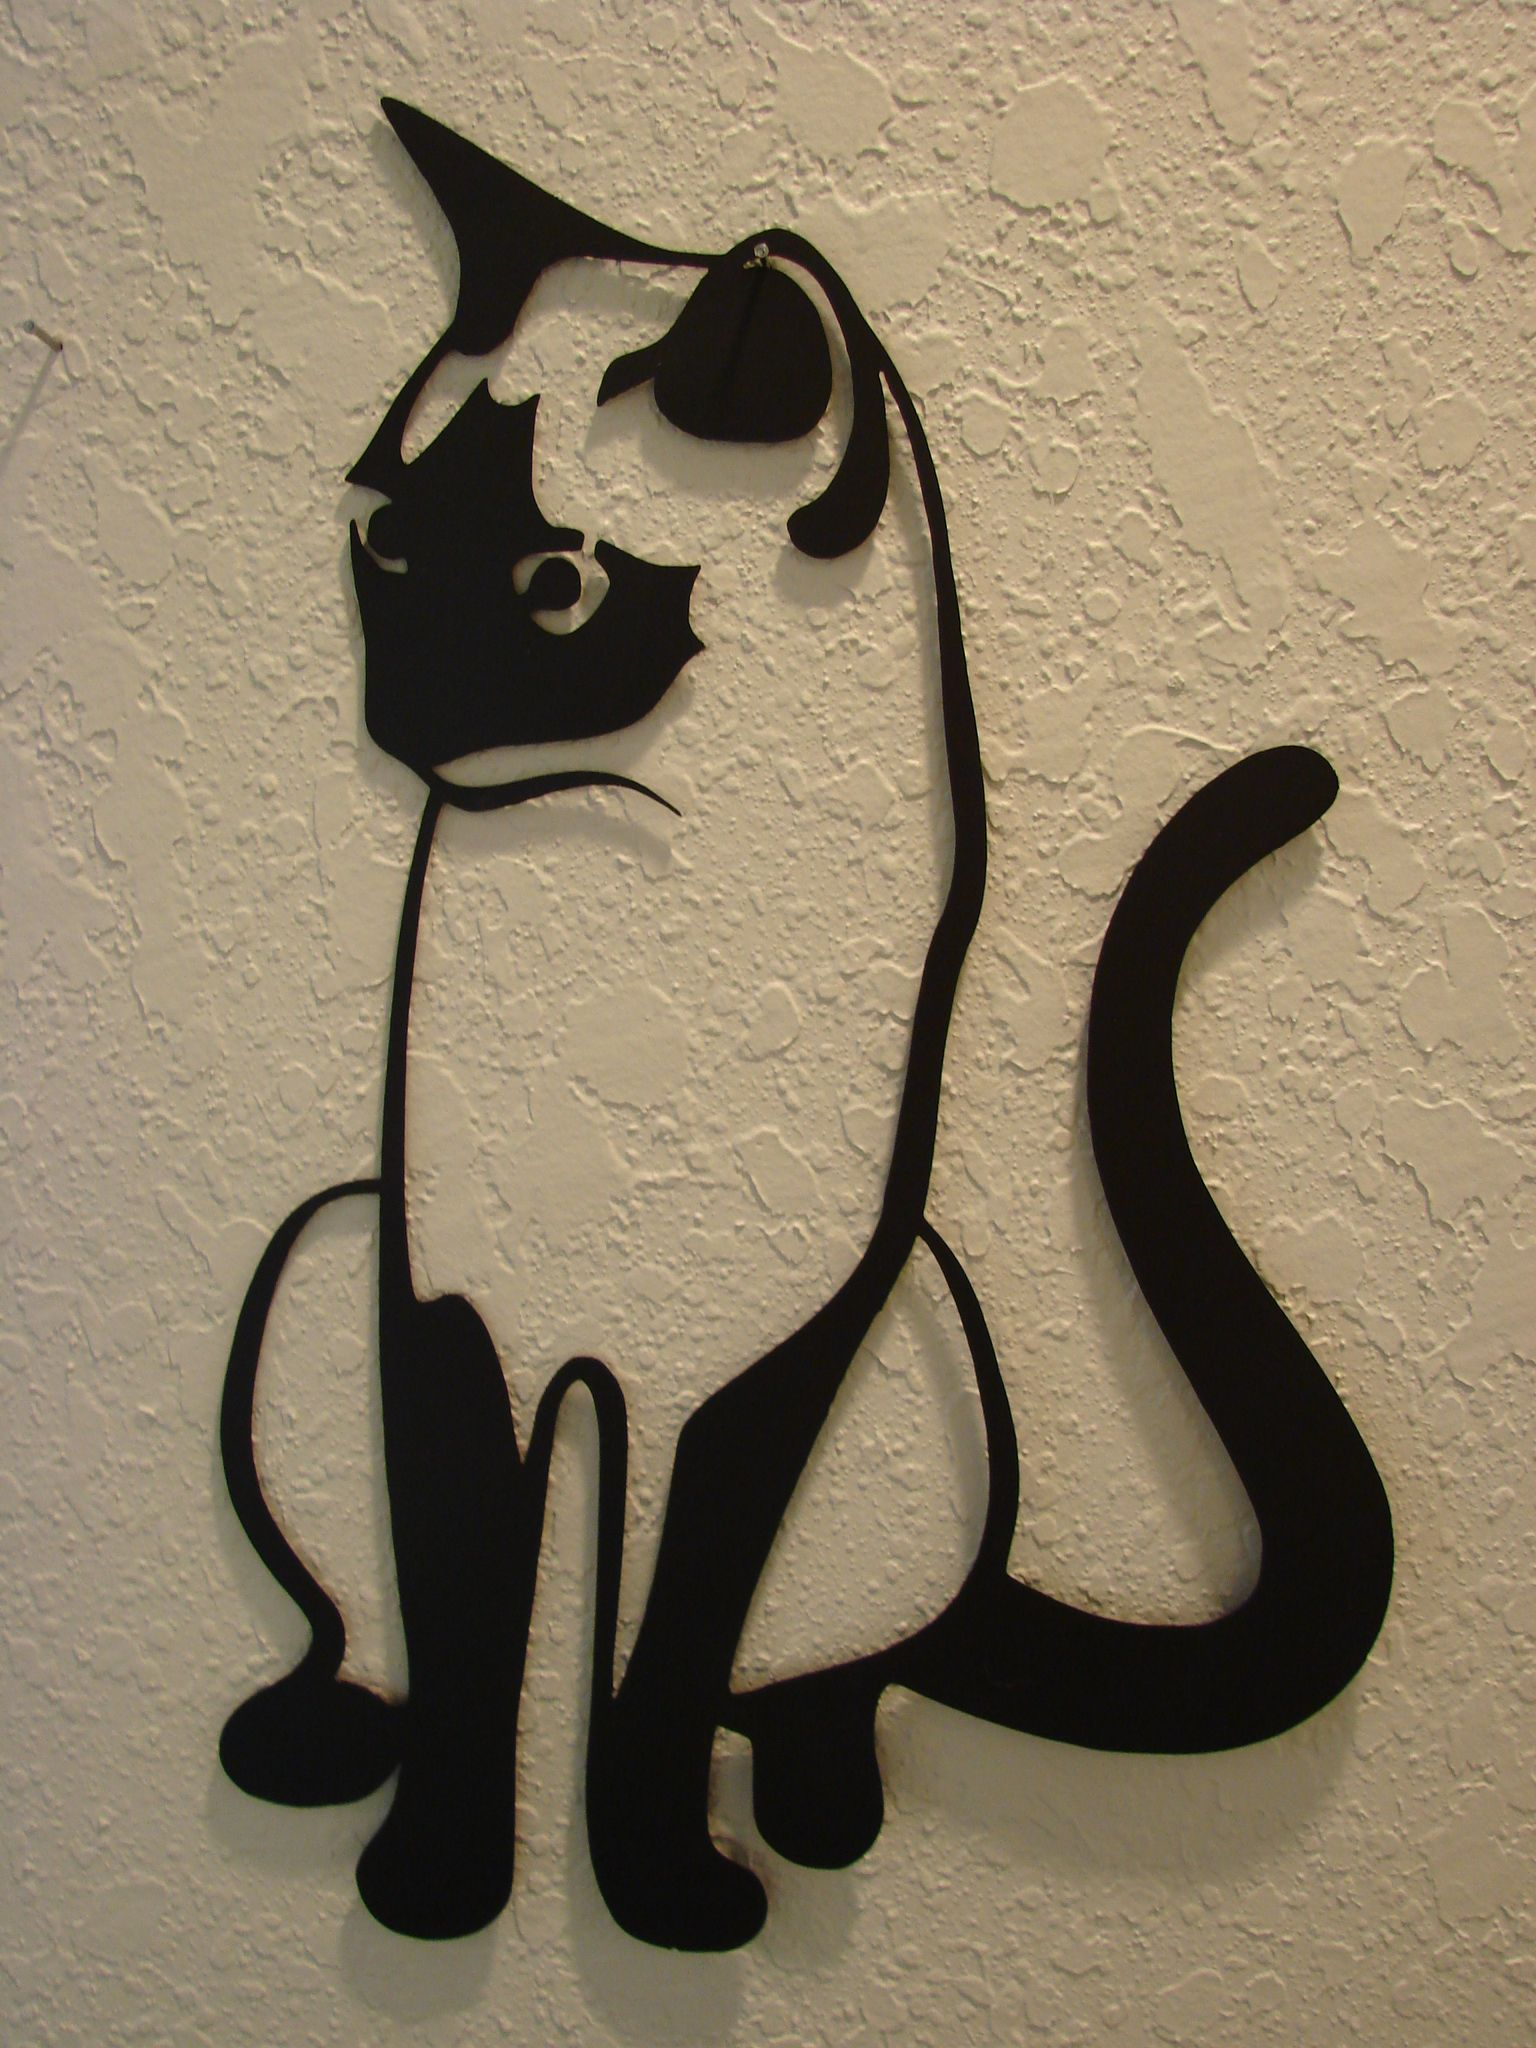 16 Gauge Plasma Cut Kitty Cat Metal Wall Art   | Plasma Torch, Cnc Plasma  And Cold Rolled